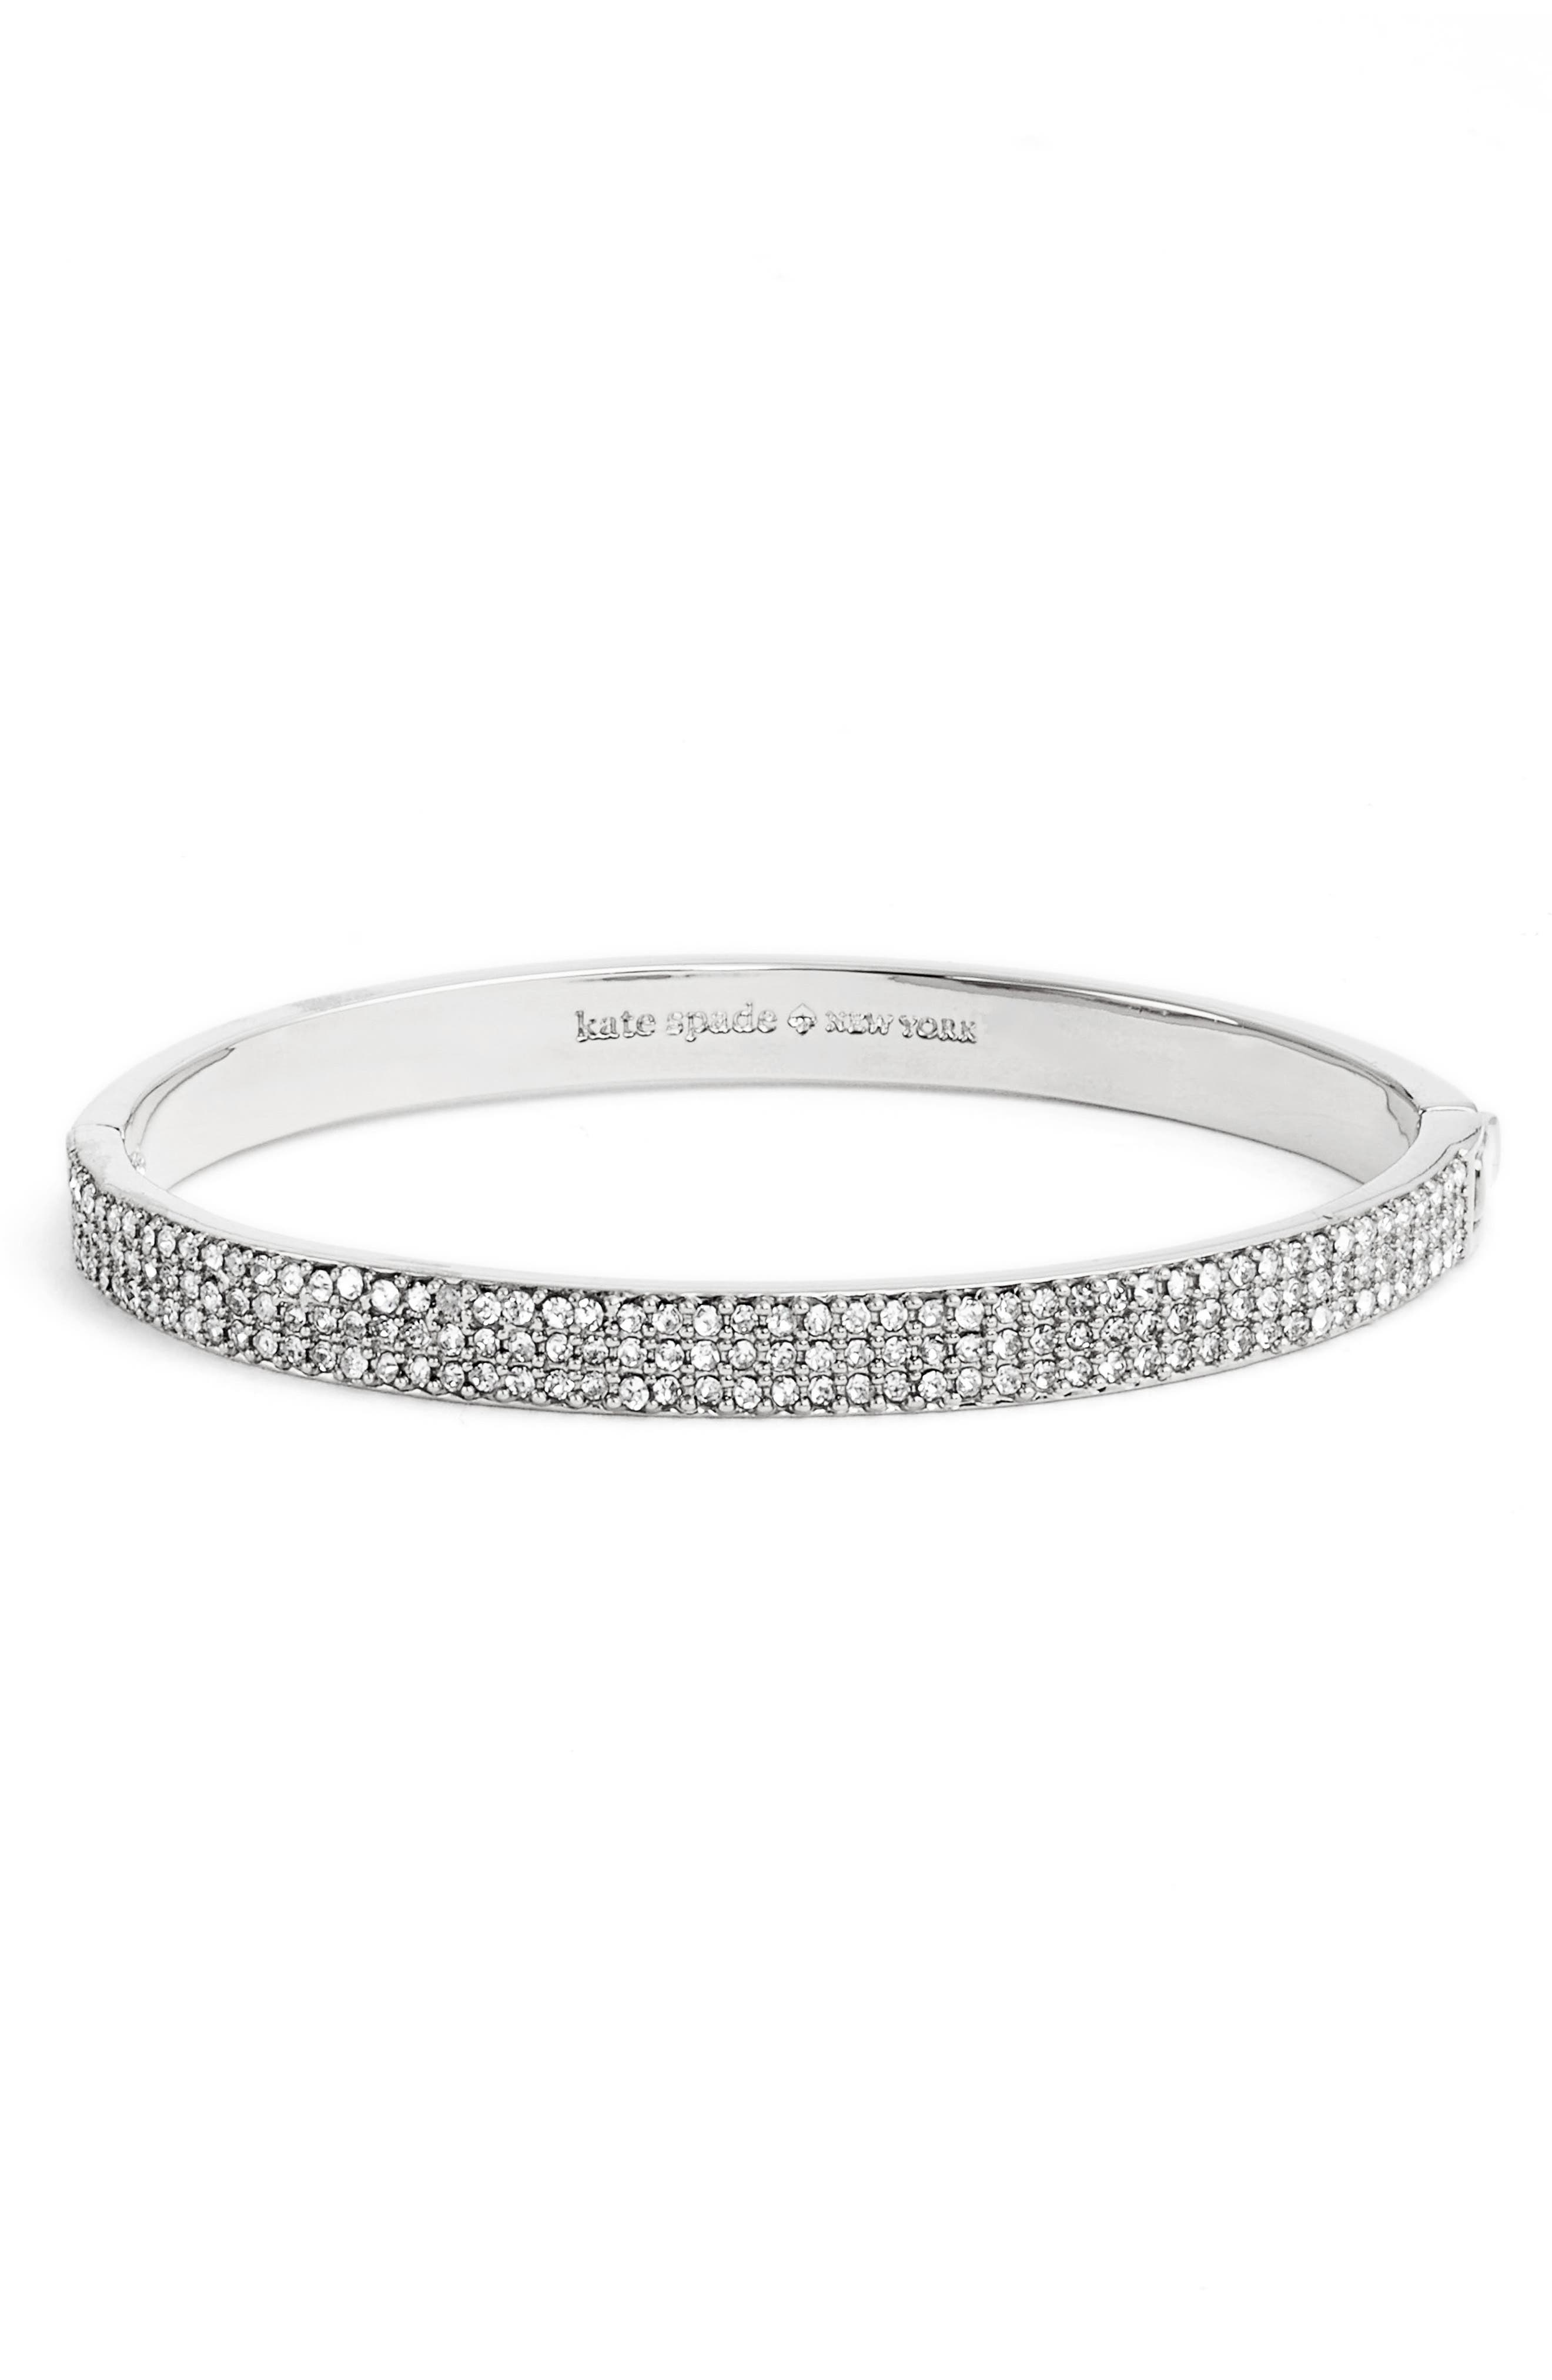 Alternate Image 1 Selected - kate spade new york heavy metals pavé bangle